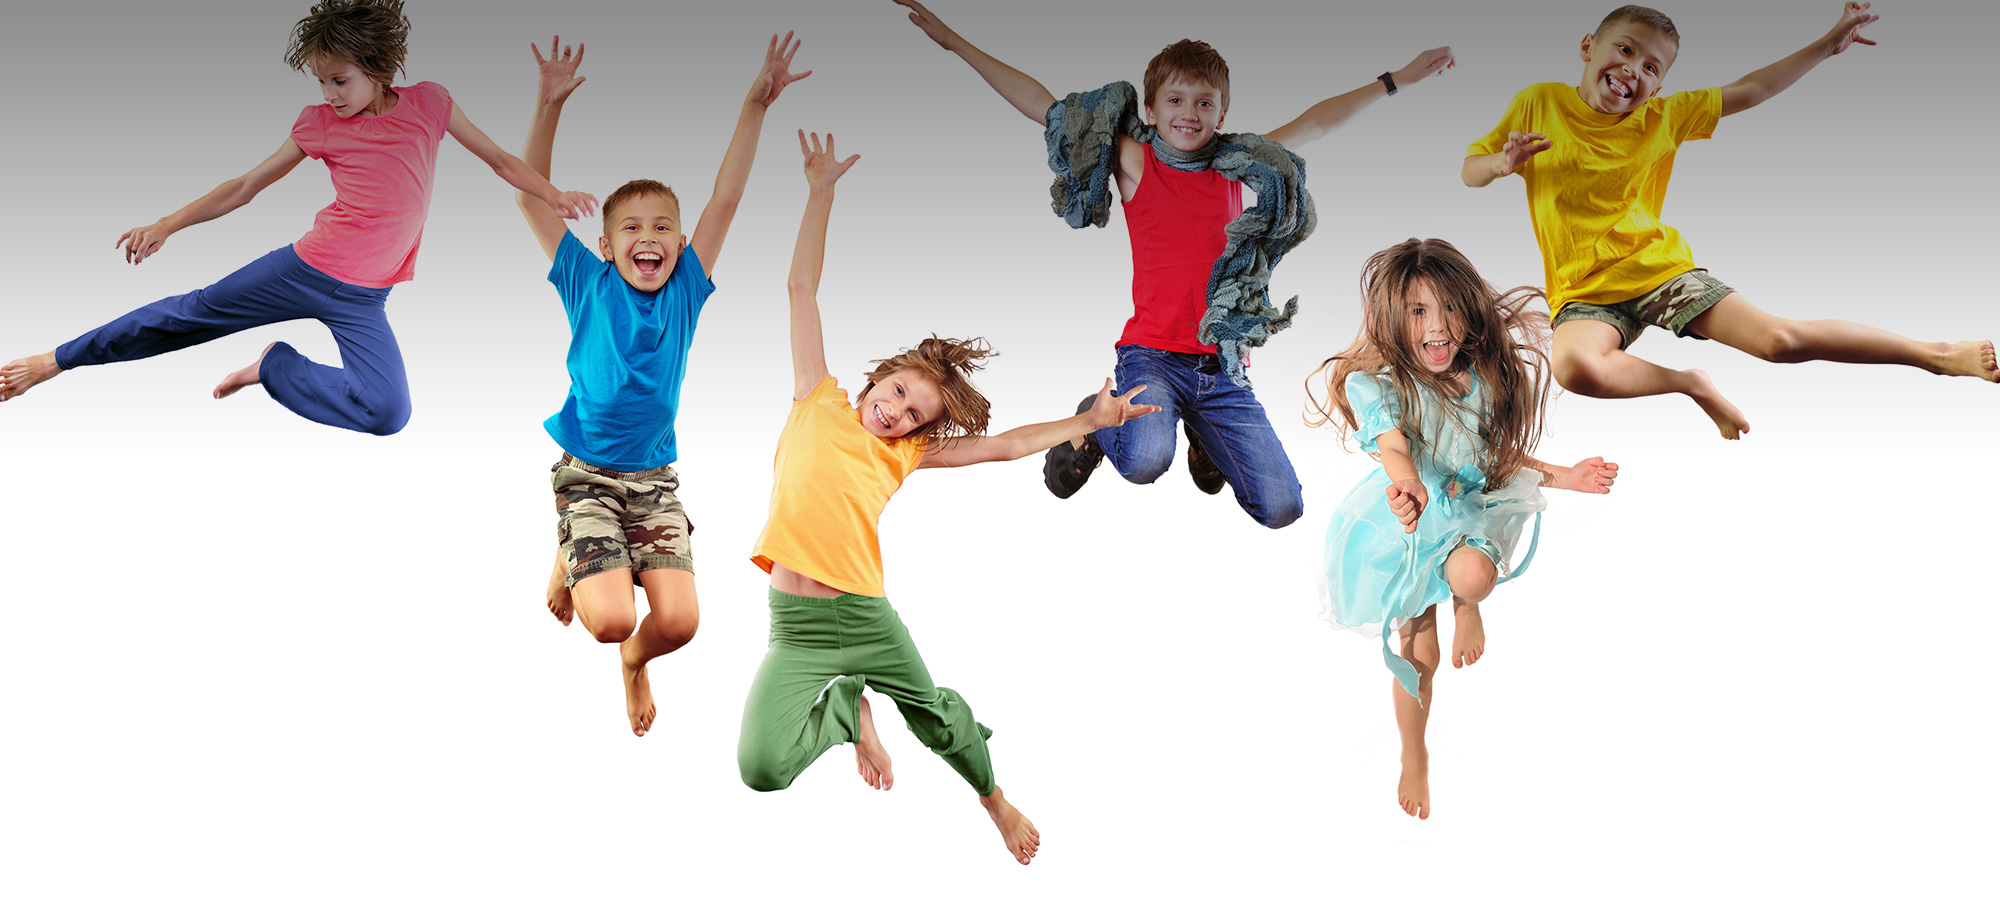 Children jumping for joy